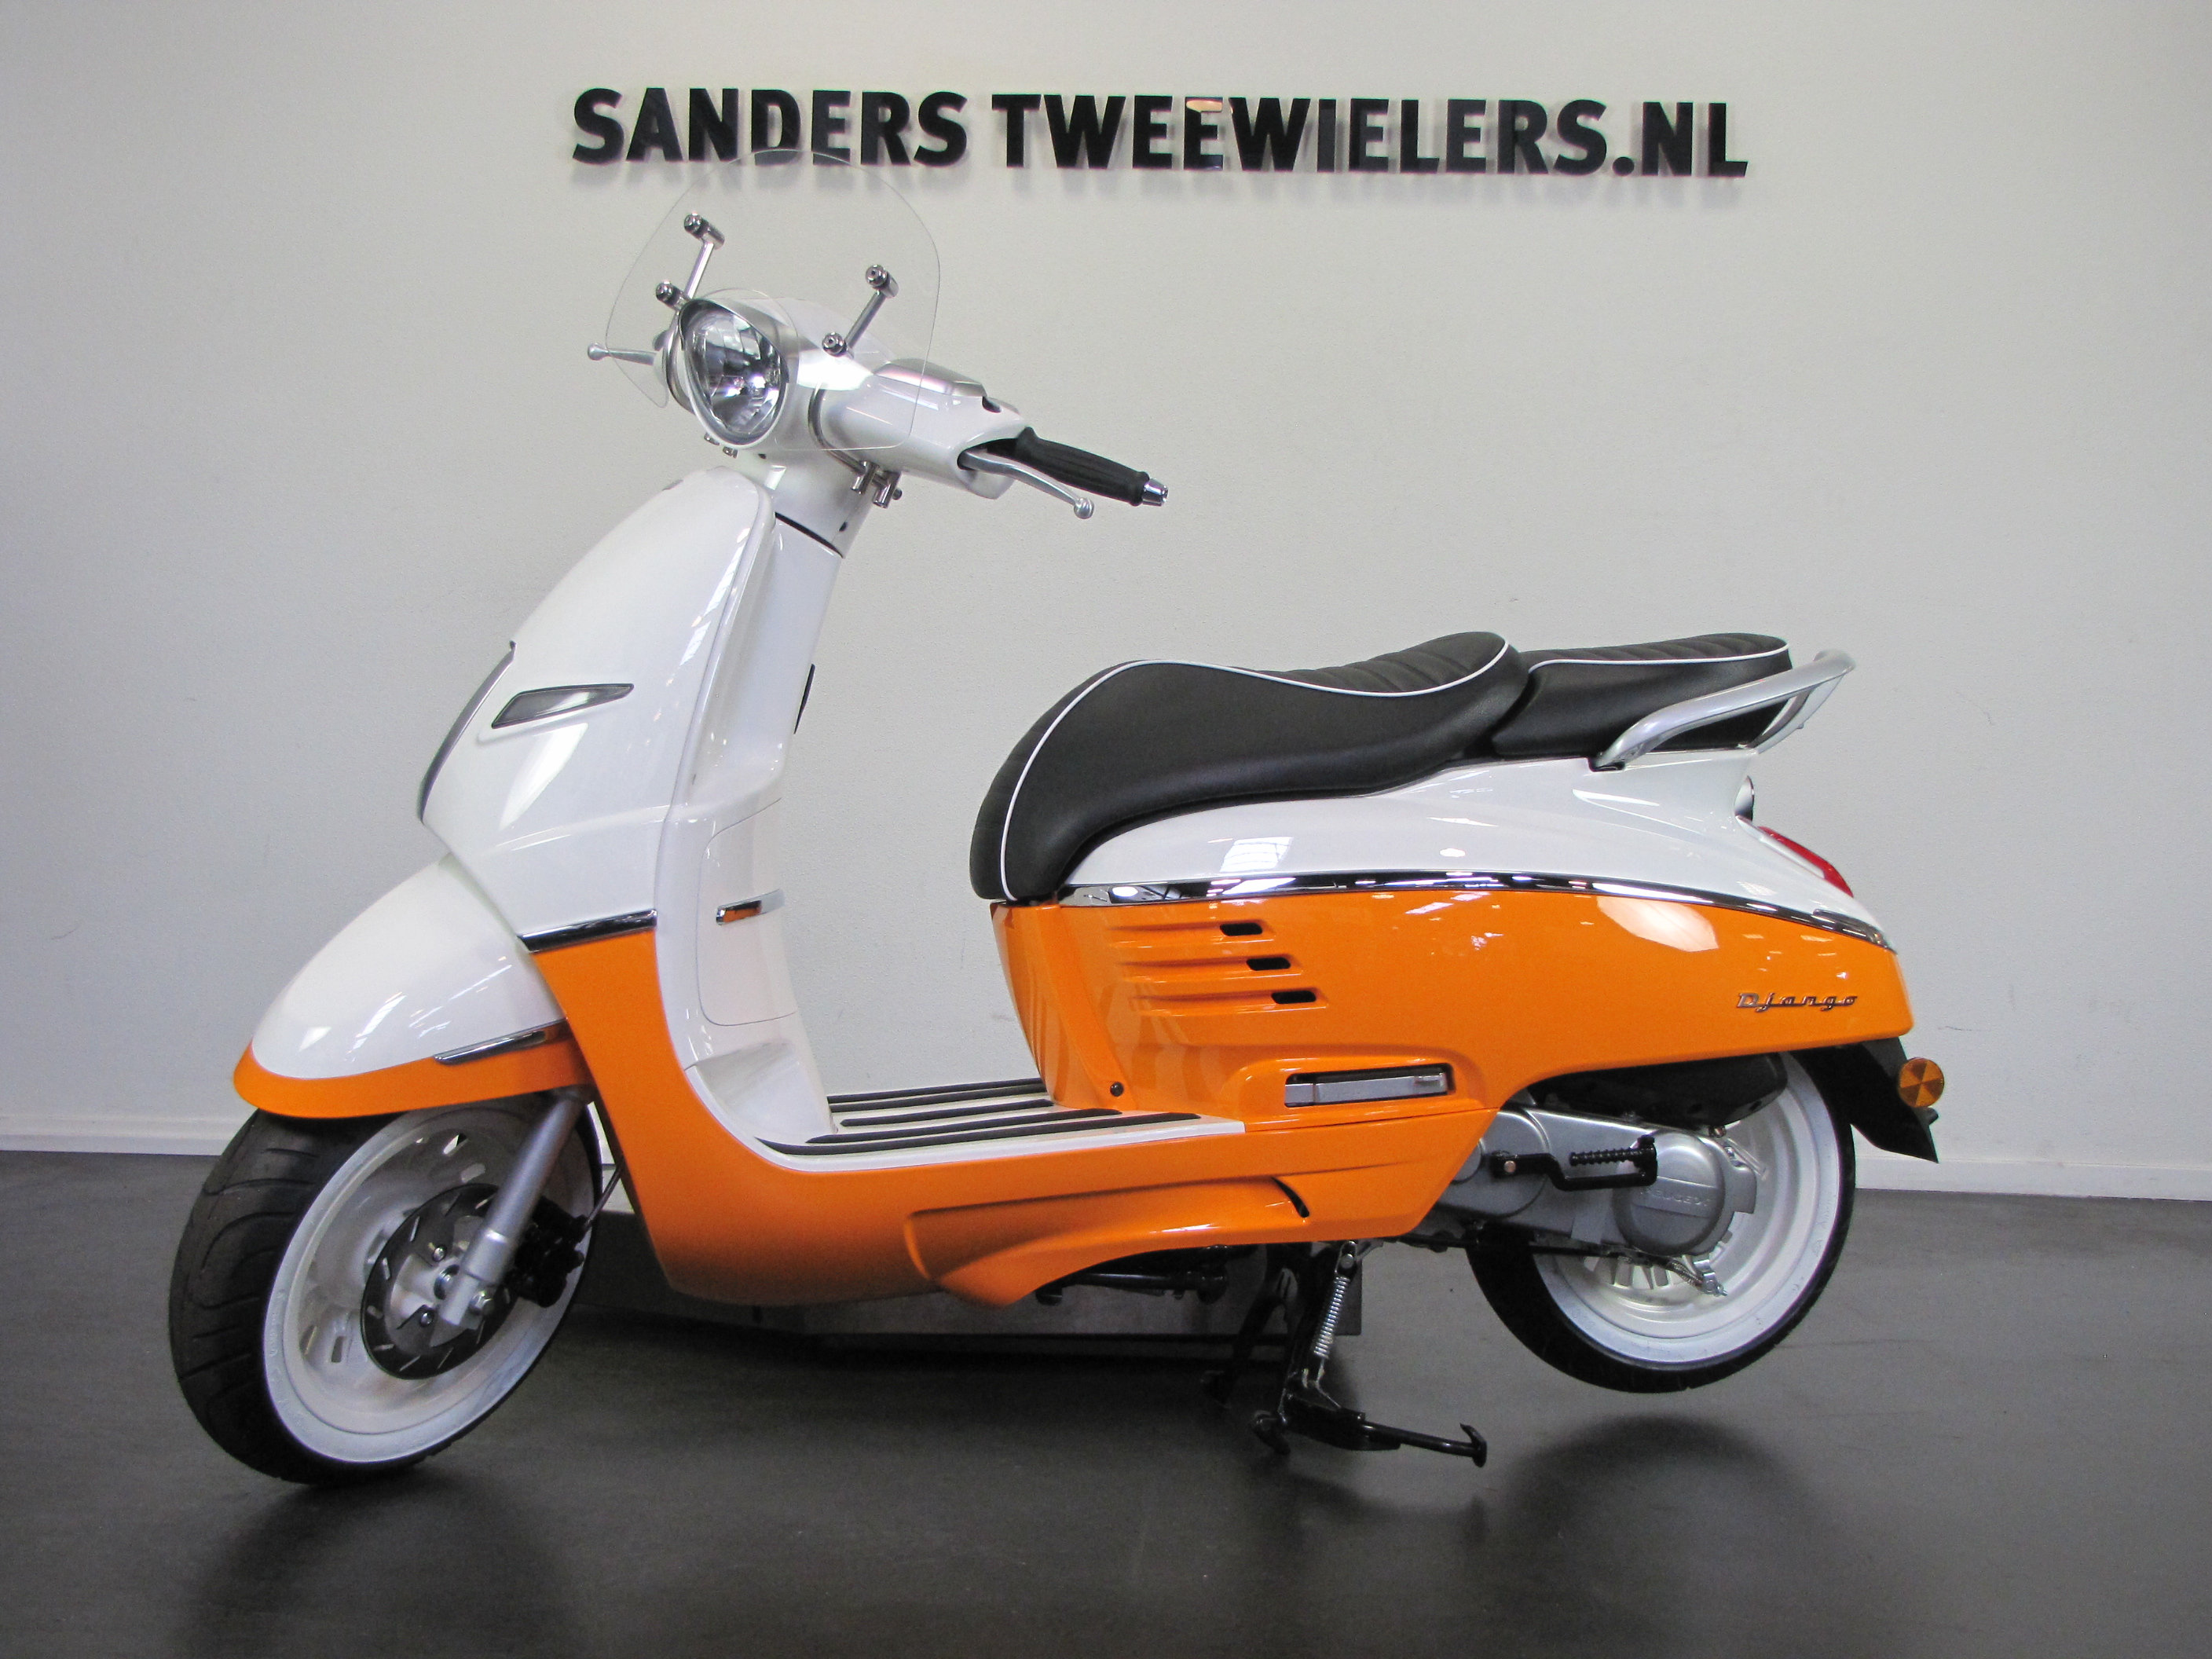 peugeot django scooter oranje vanaf 2998 bij sanders tweewielers. Black Bedroom Furniture Sets. Home Design Ideas